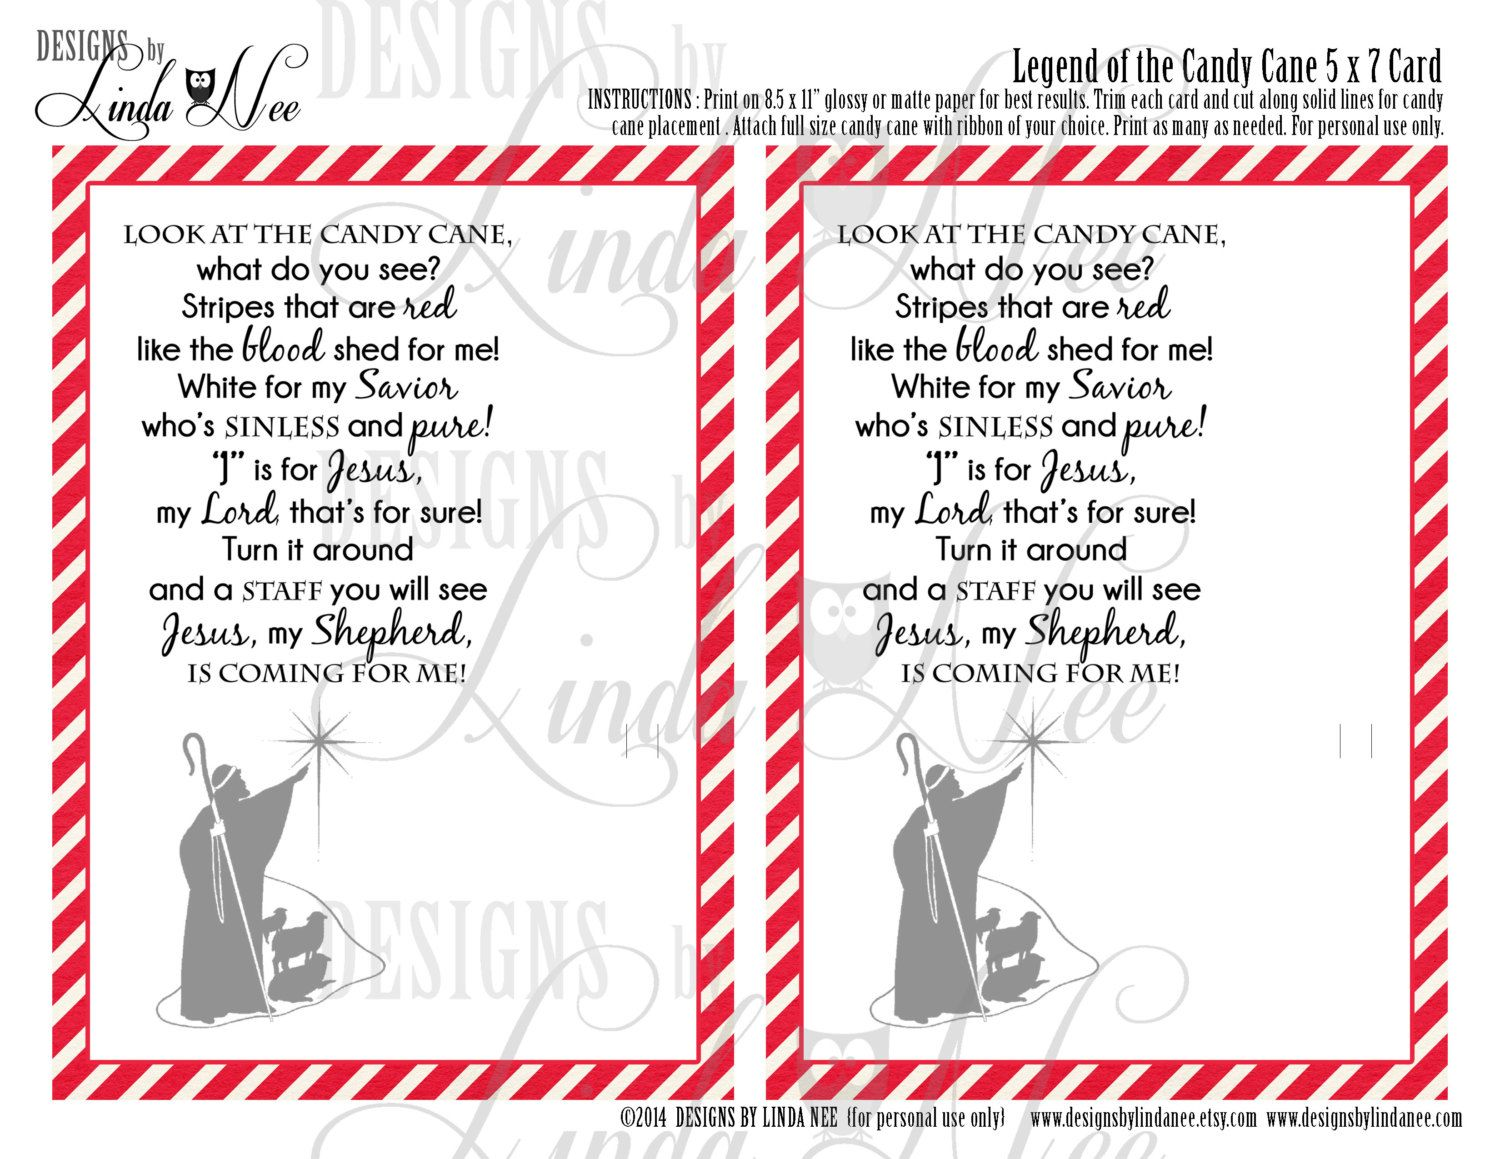 Legend of the Candy Cane - Printable 5 x 7 cards with poem ...